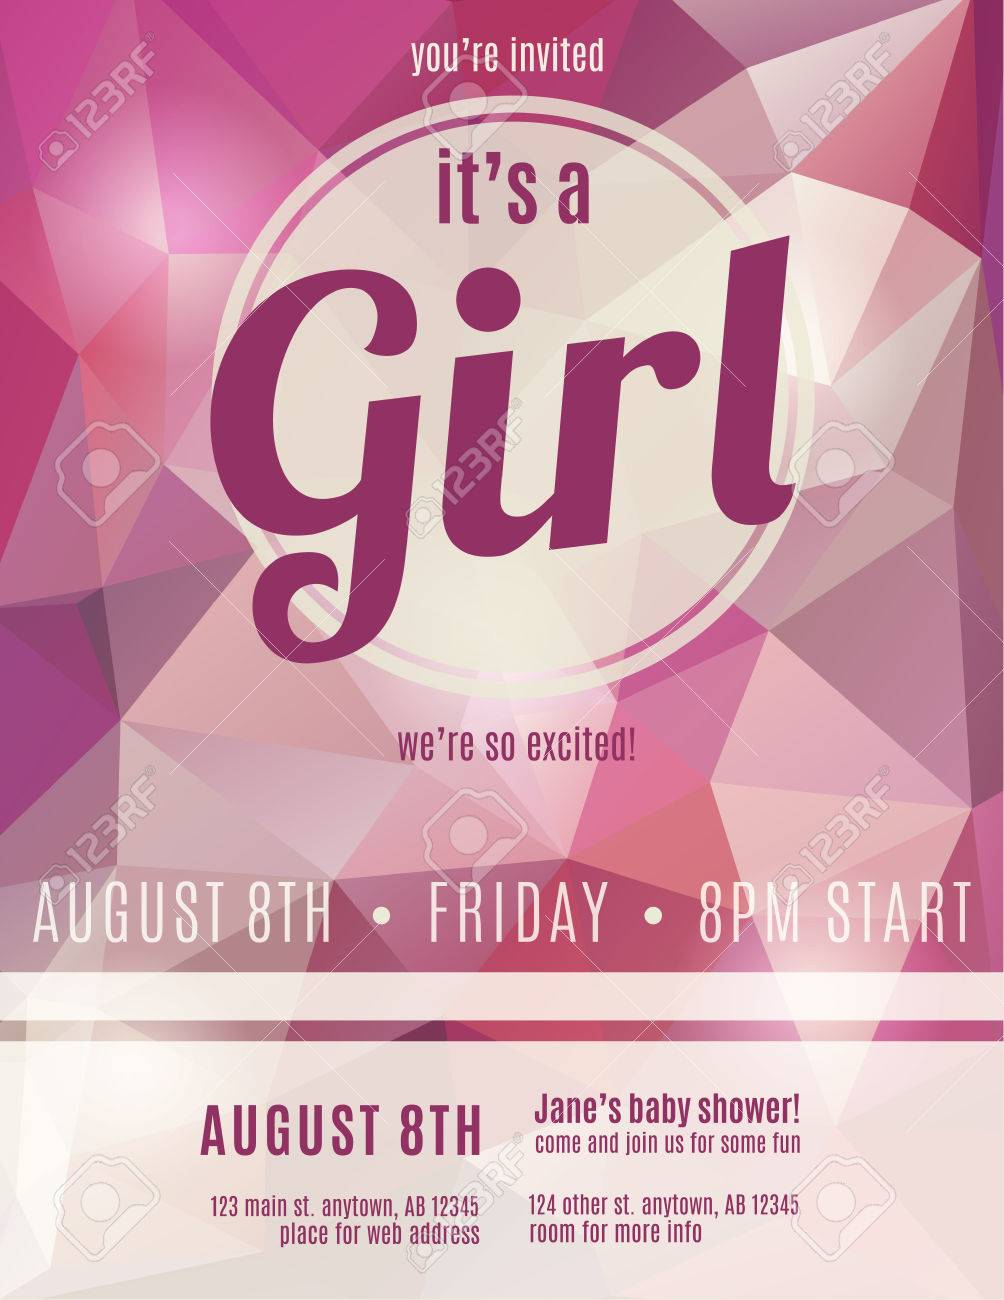 Its A Girl Birth Announcement Flyer Design Template For Baby Royalty Free Cliparts Vectors And Stock Illustration Image 35653205